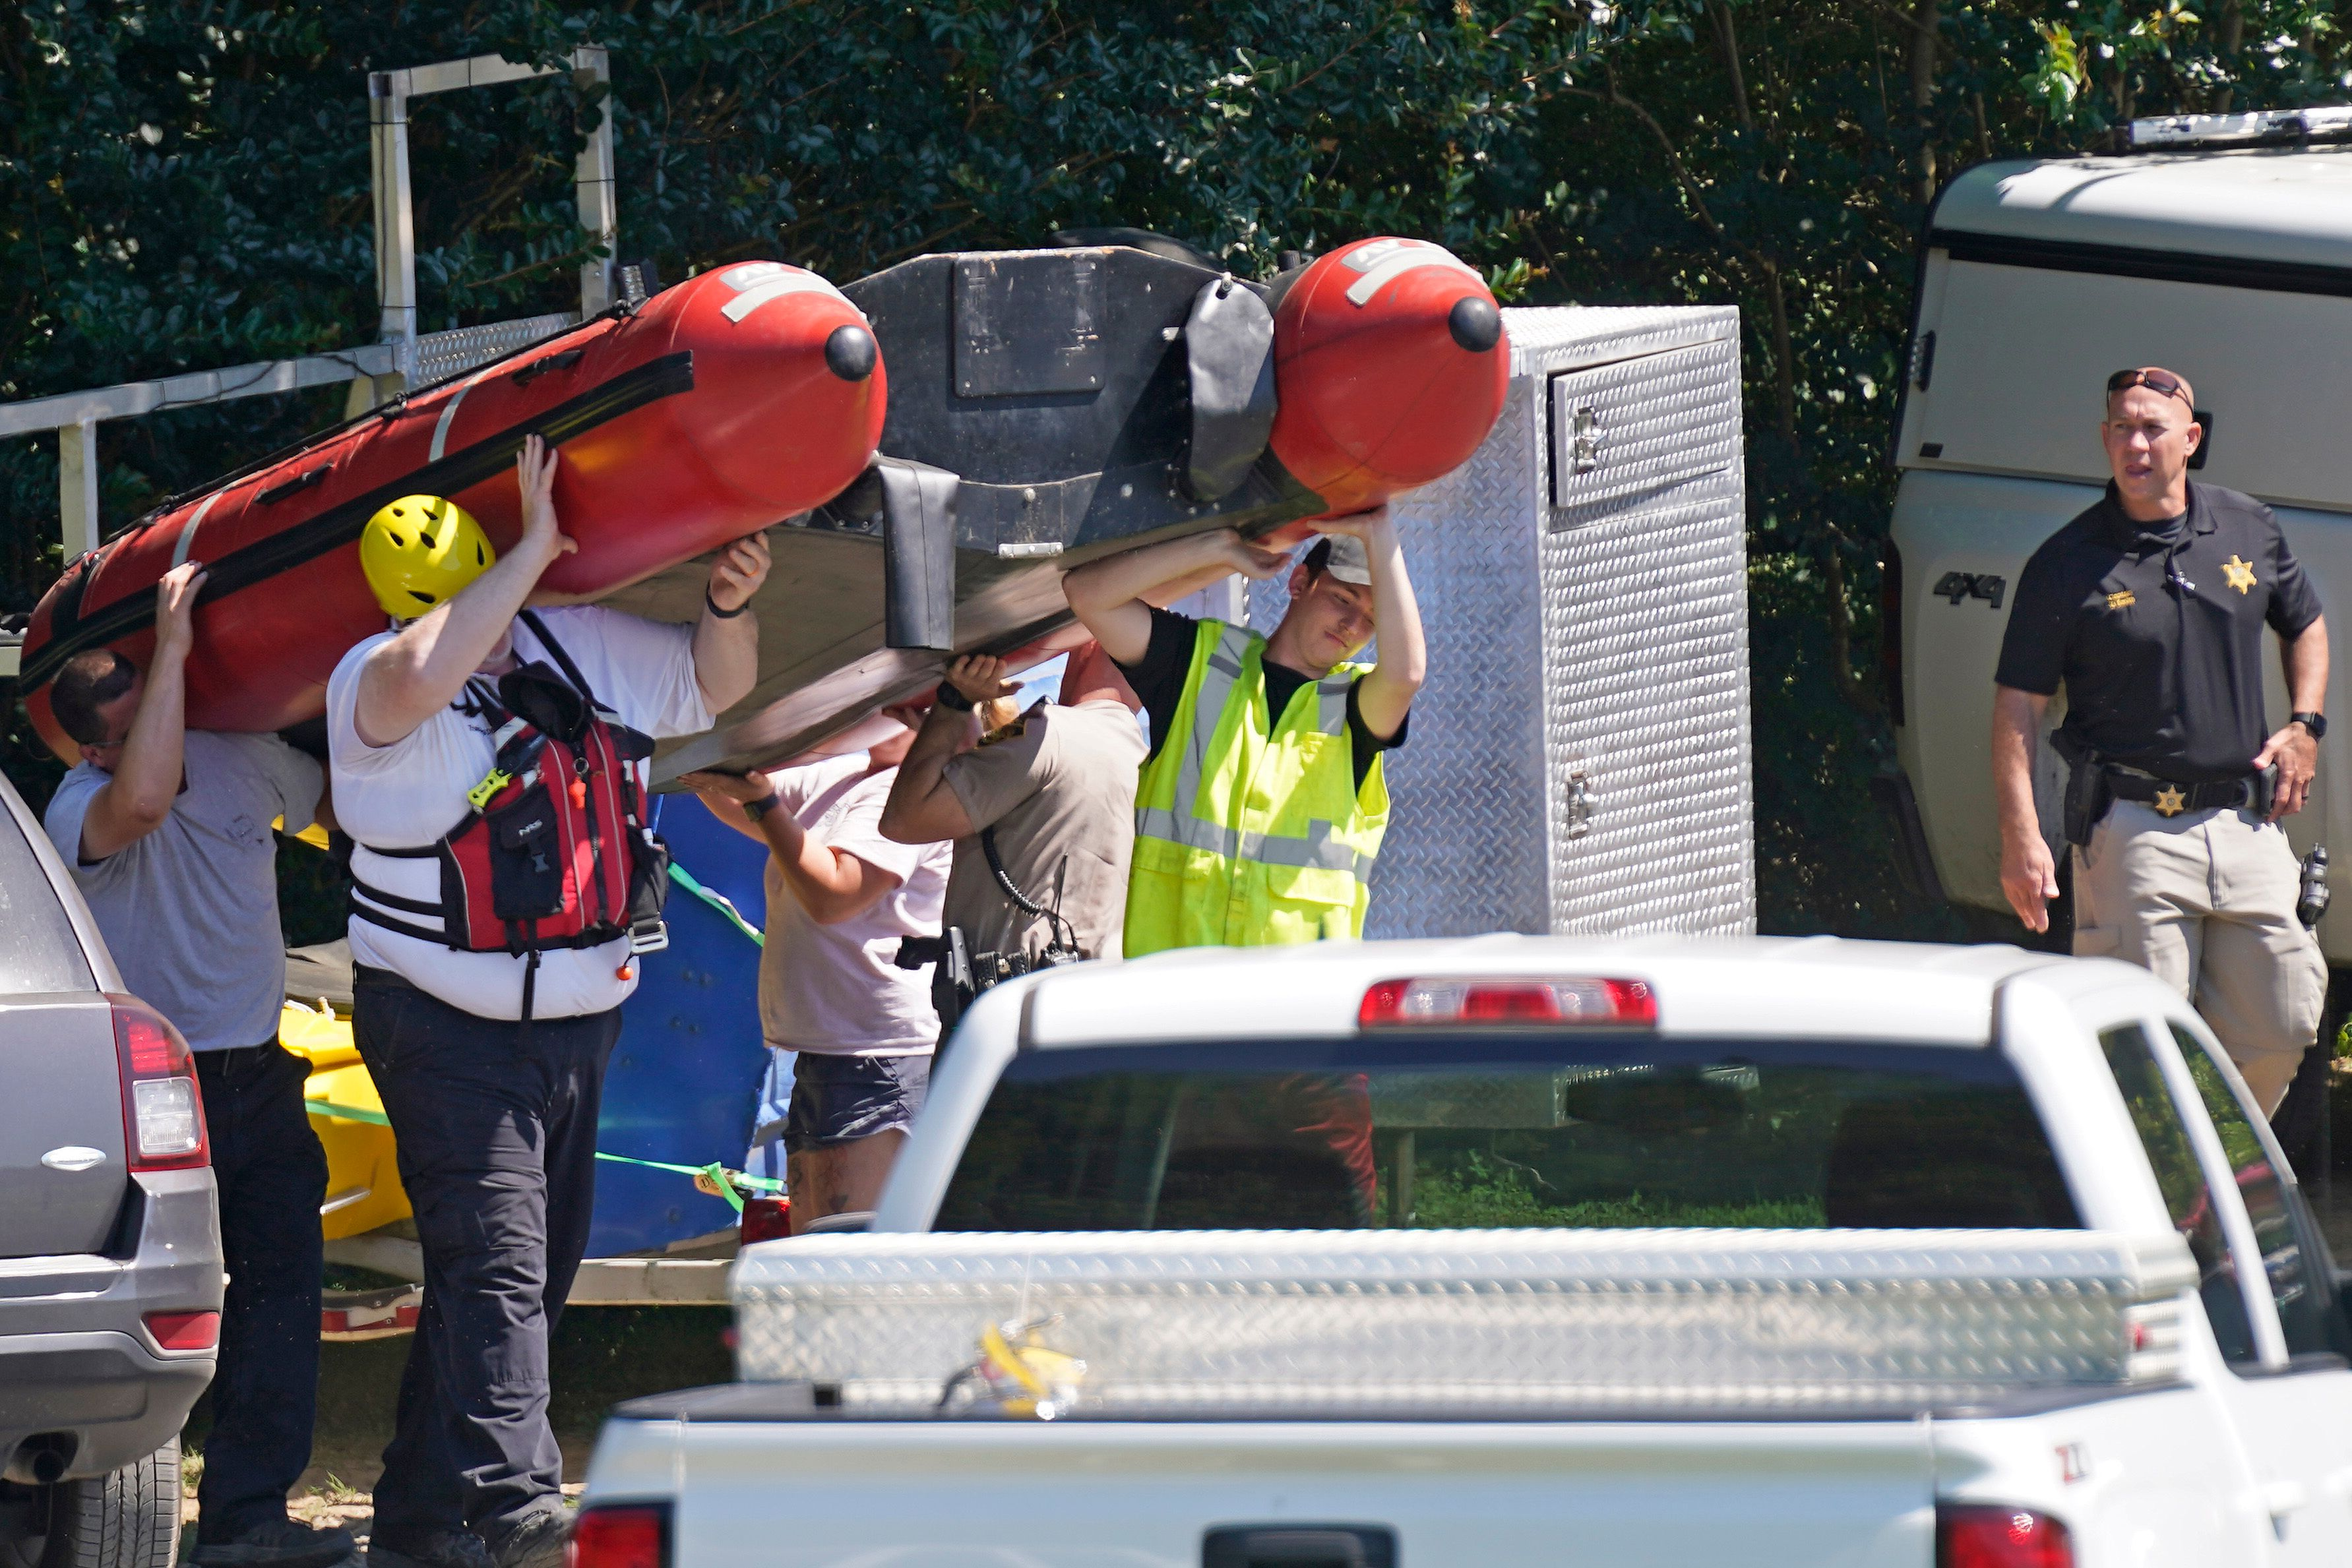 Rescue personnel stage along the Dan River in Eden, N.C., Friday, June 18, 2021. (AP Photo/Gerry Broome)